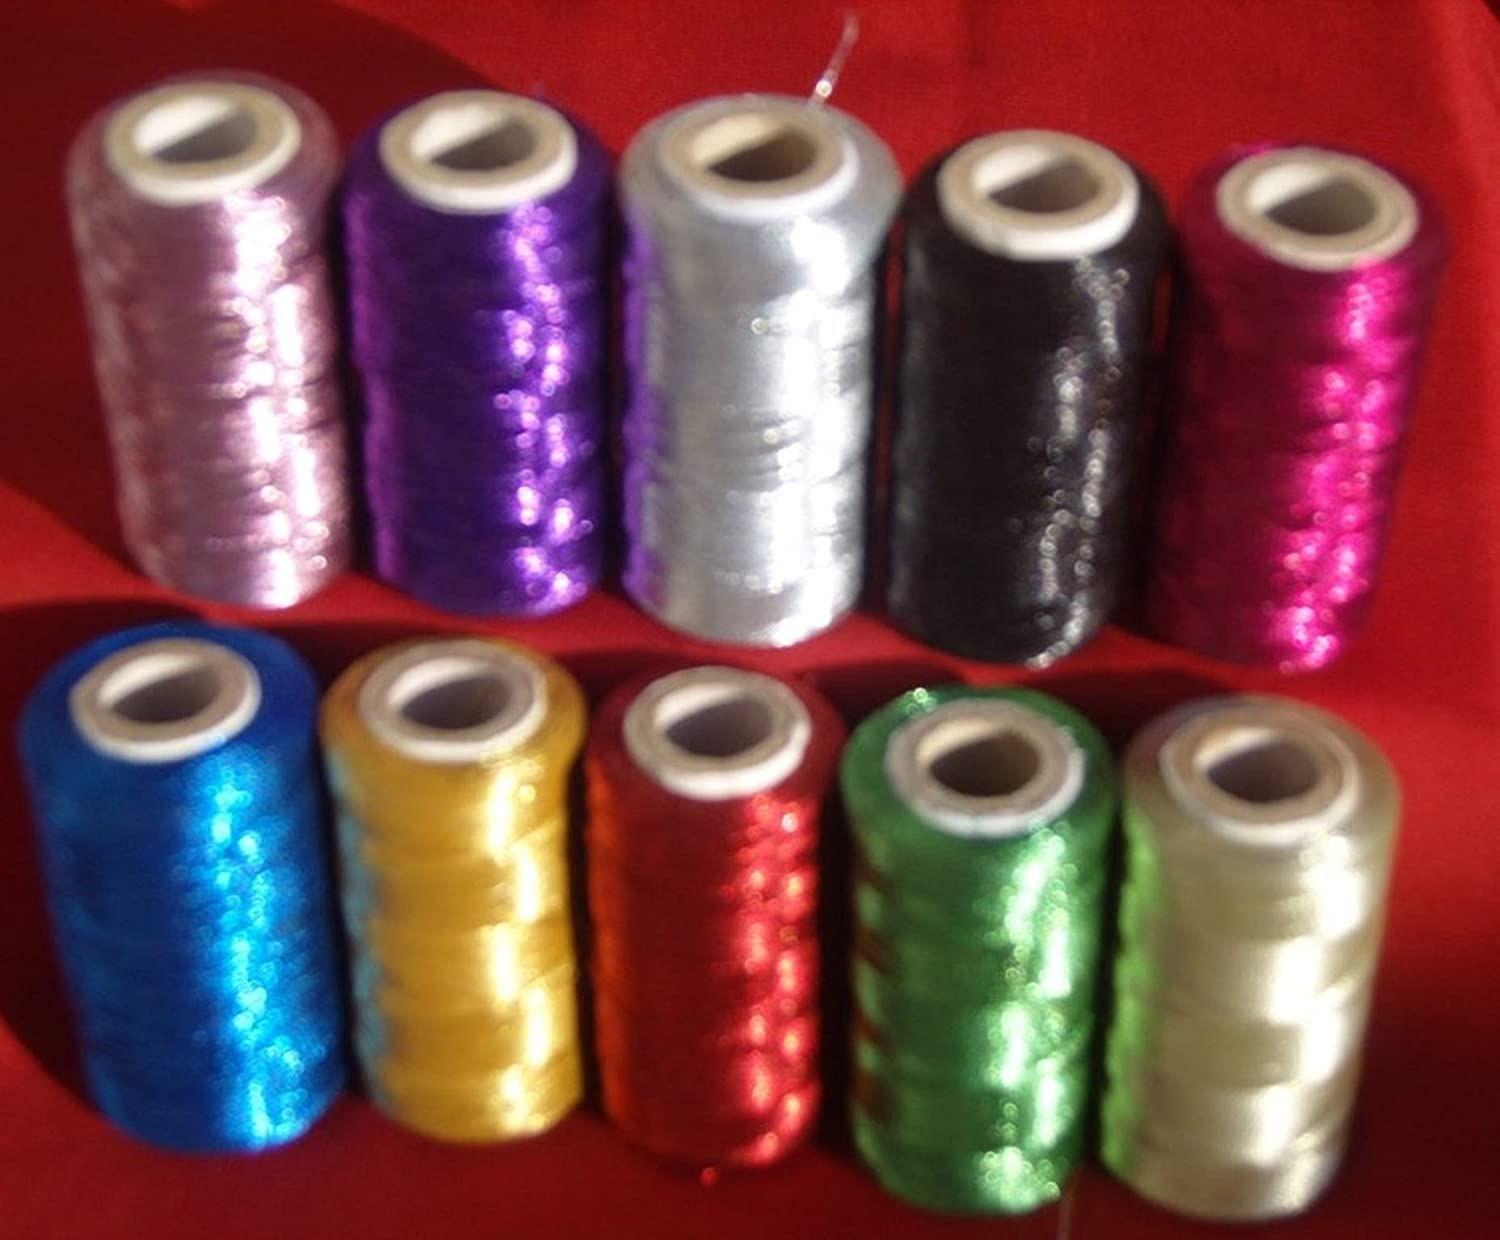 10 Metallic Embroidery Machine Thread Spools,10 different colour 400 YARDS EACH, High Quality GCS